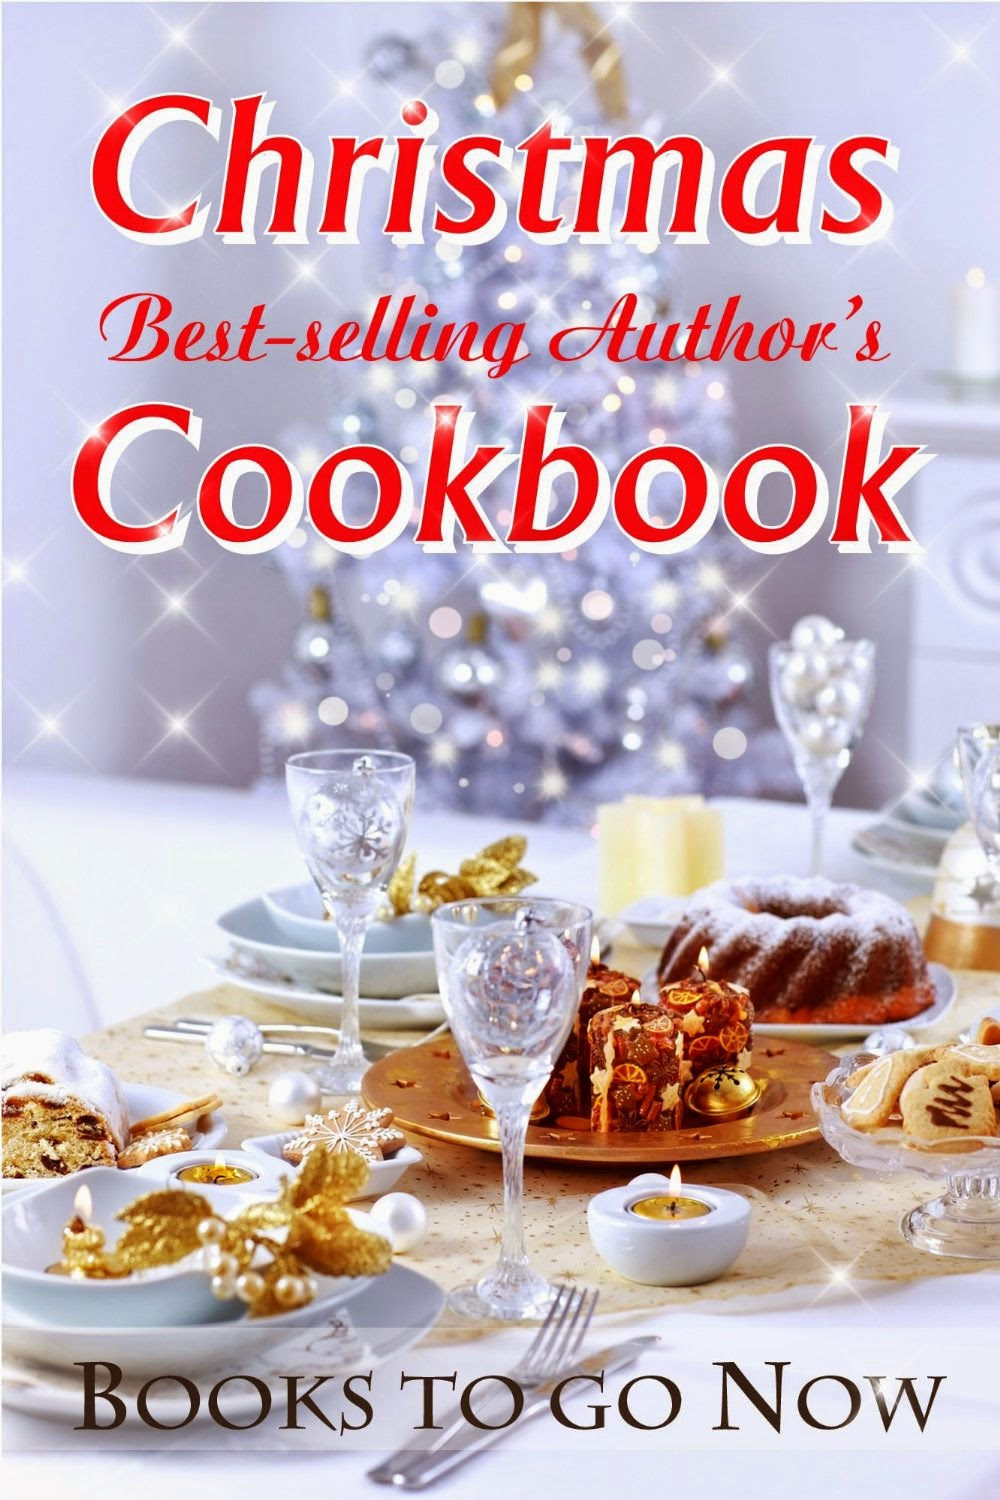 http://www.amazon.com/Christmas-Best-Selling-Authors-Cookbook-Sharon-ebook/dp/B00O2AMWM8/ref=sr_1_13?s=books&ie=UTF8&qid=1421614367&sr=1-13&keywords=sharon+kleve